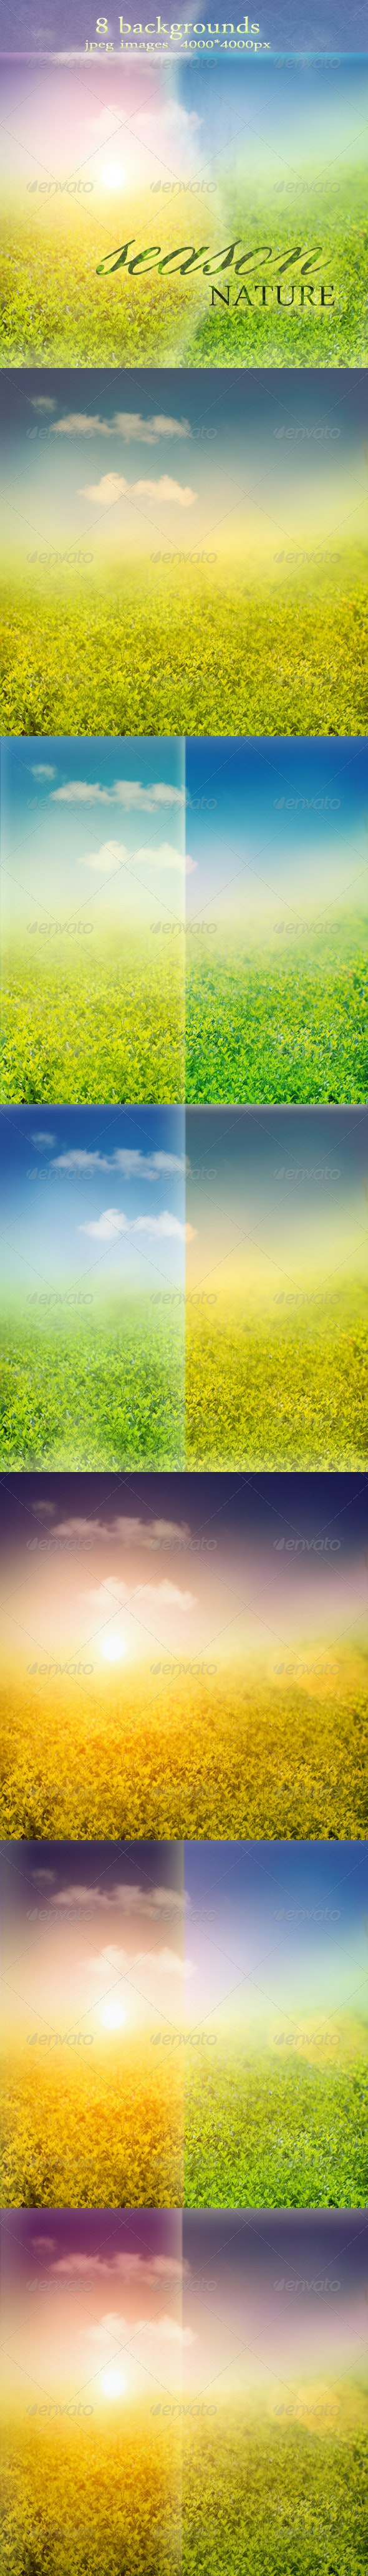 Nature Backgrounds with Spring or Summer Landscape - Nature Backgrounds